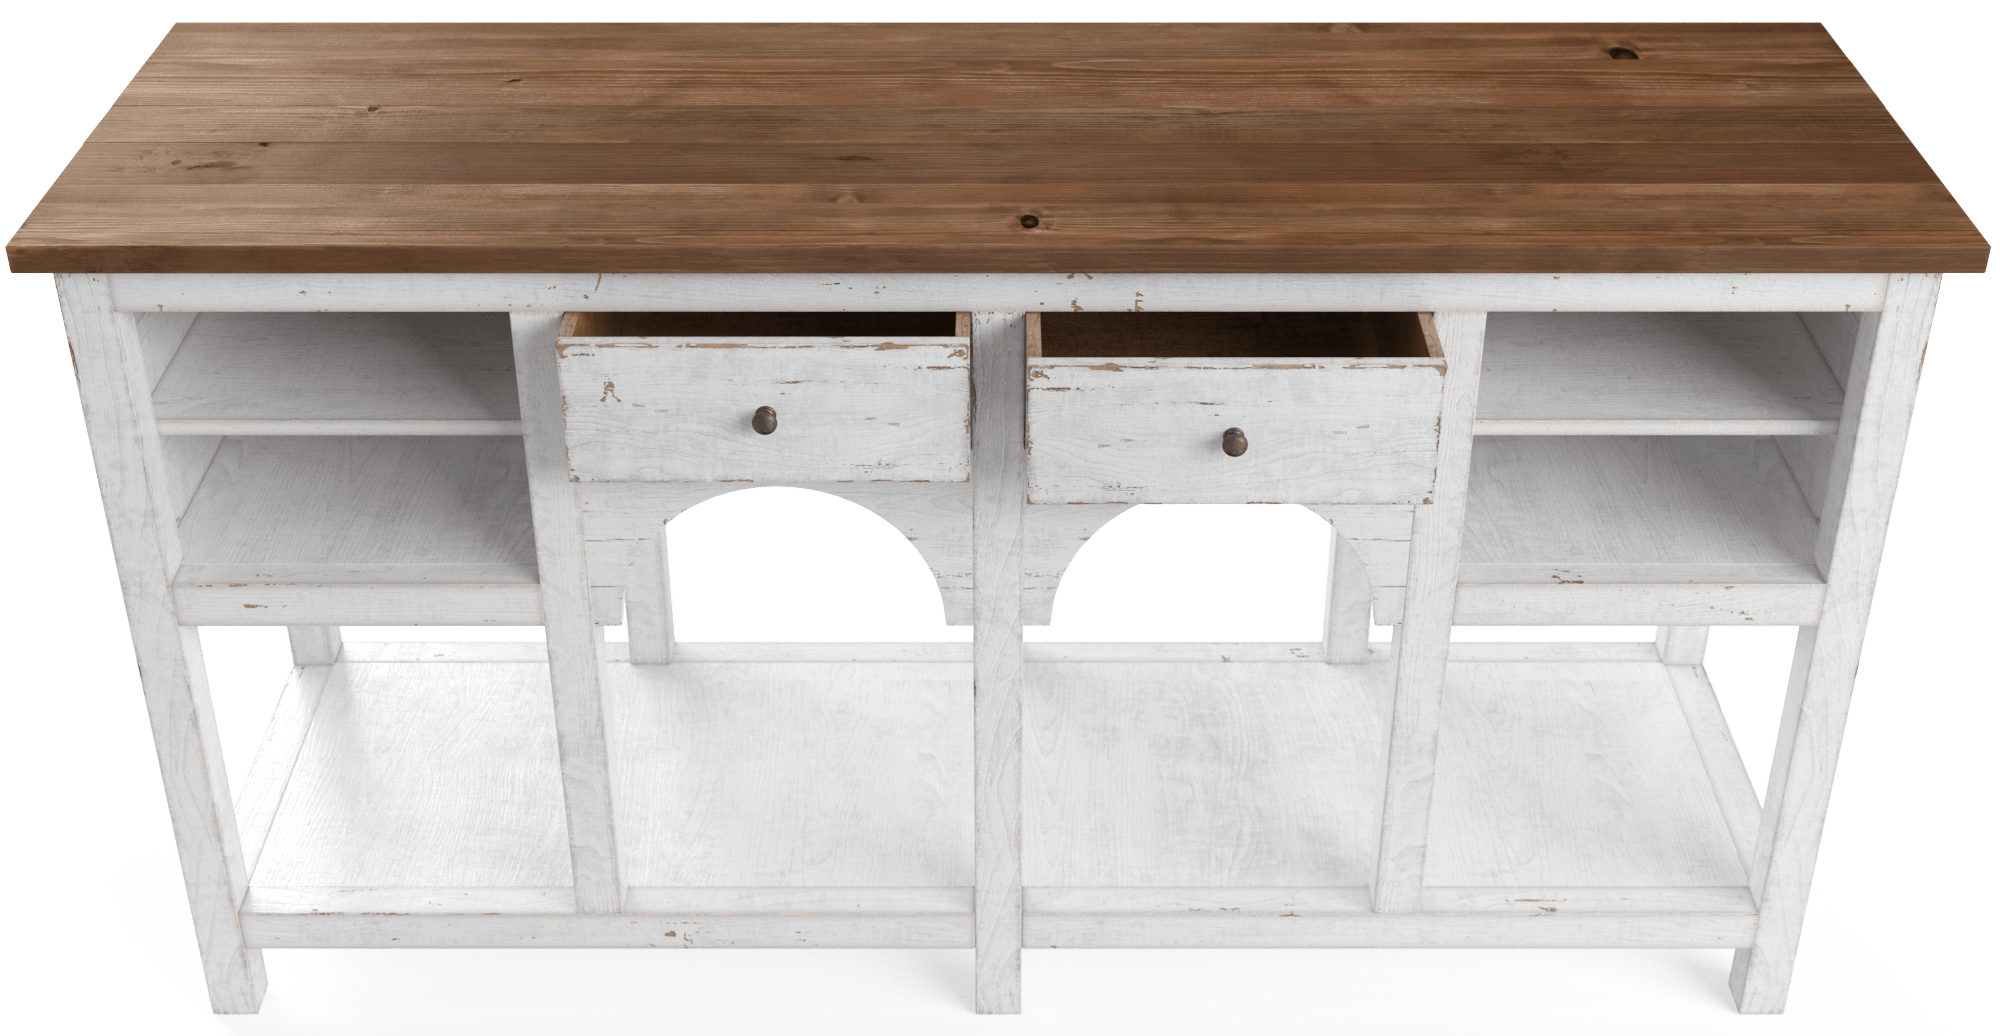 Basing Small Kitchen Bench